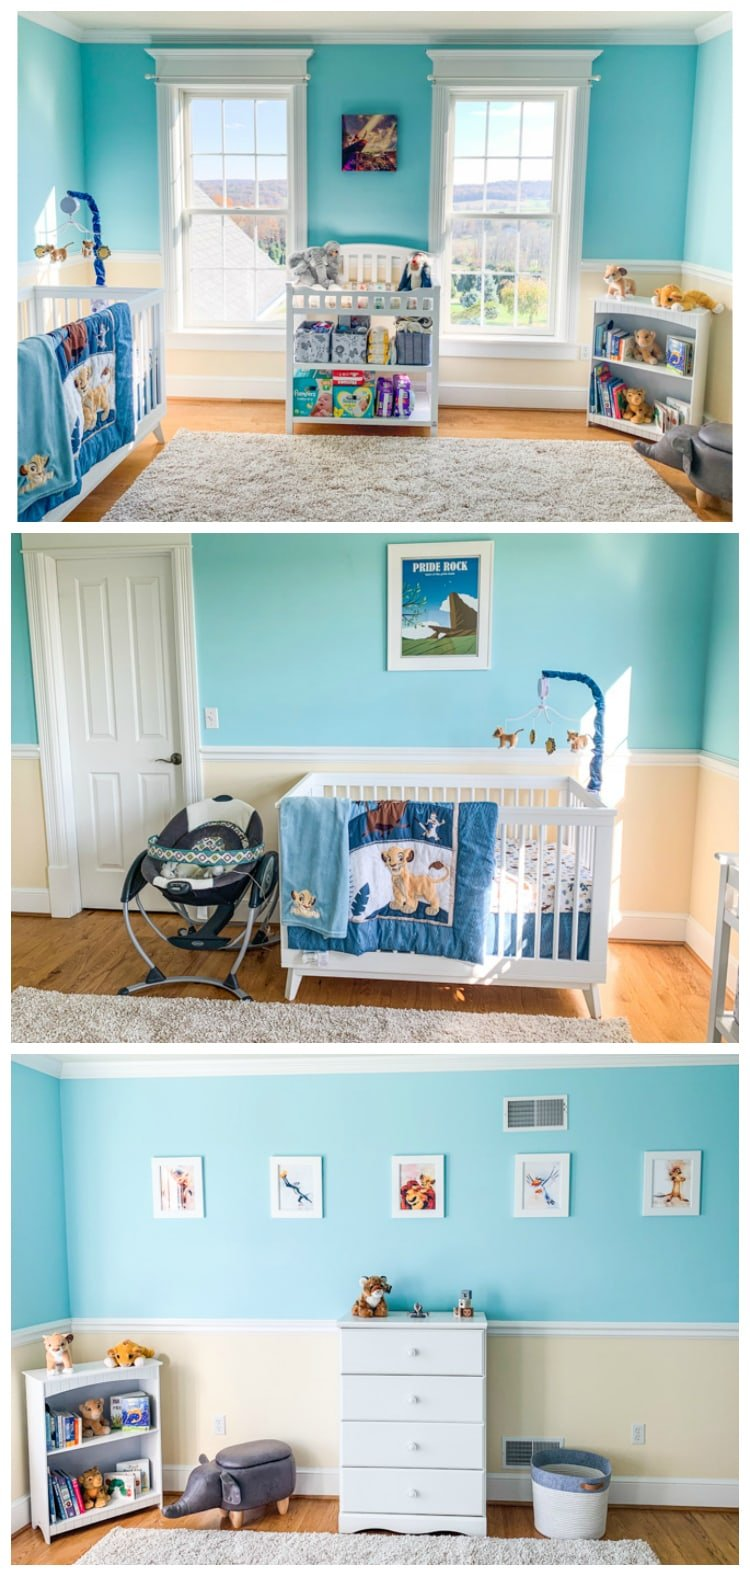 Pictures of baby room